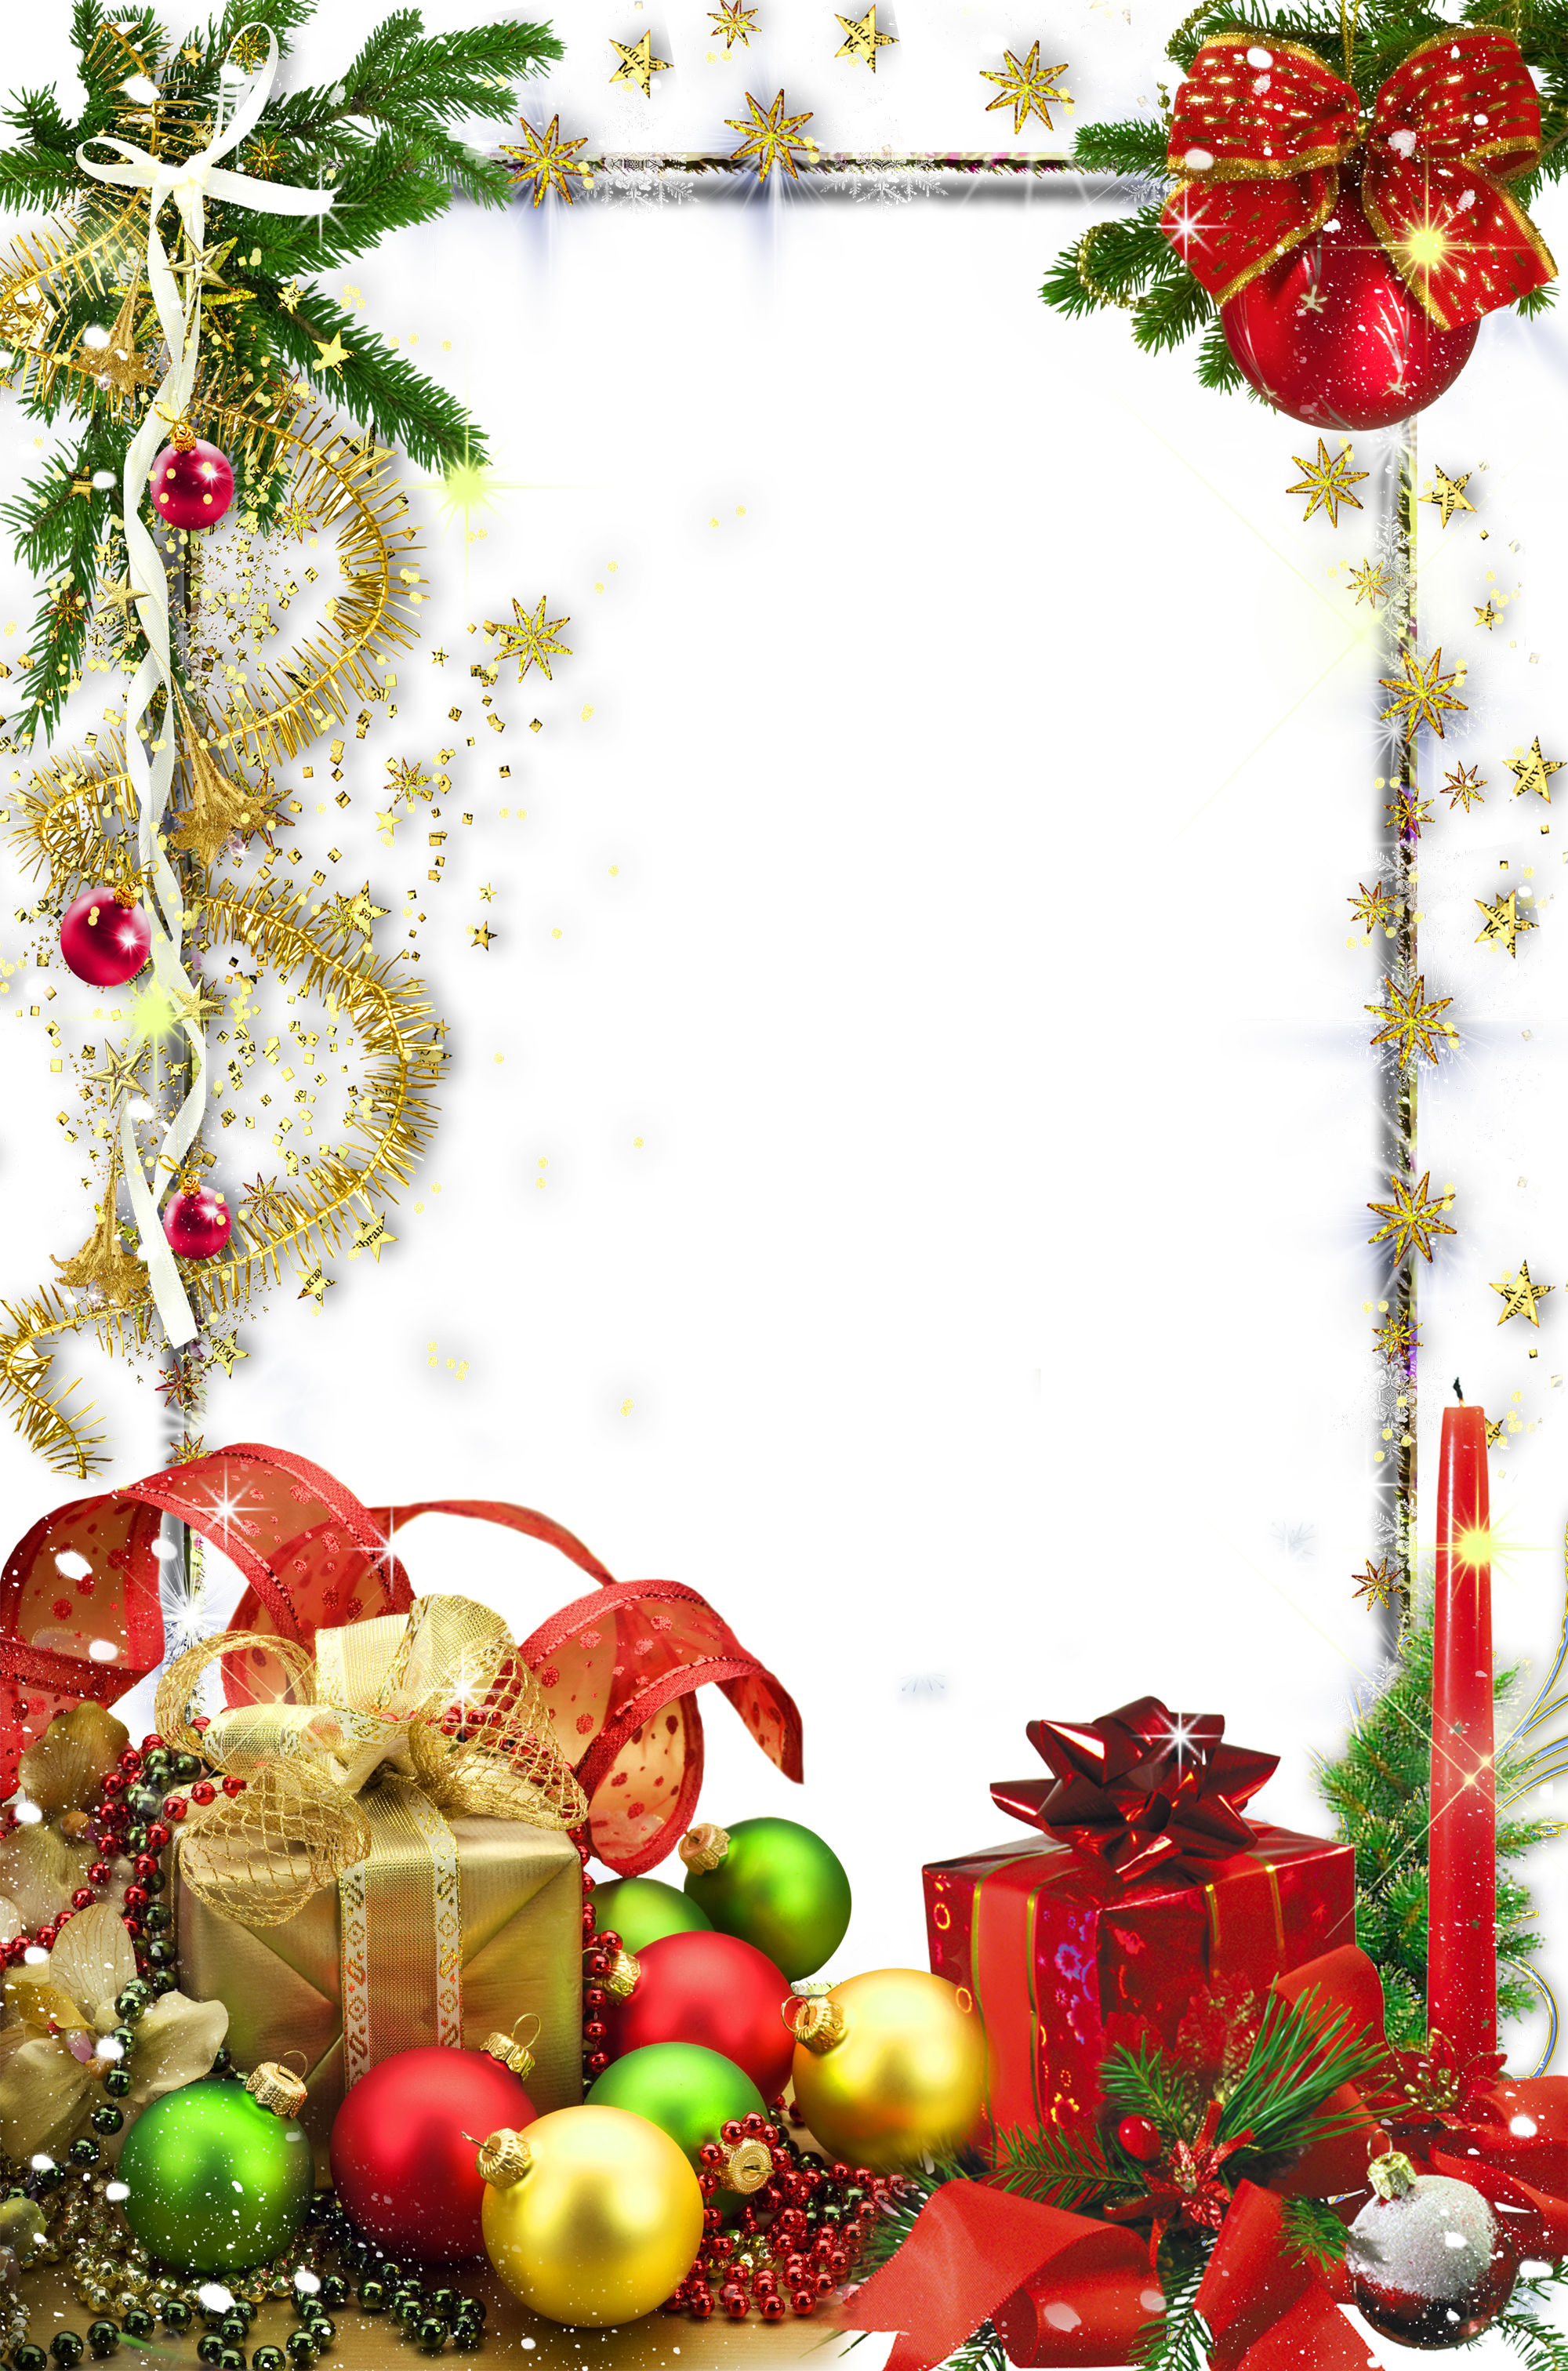 Christmas clipart background jpg free library Transparent Christmas Holiday Photo Frame | Christmas❆ClipArt, PNG ... jpg free library